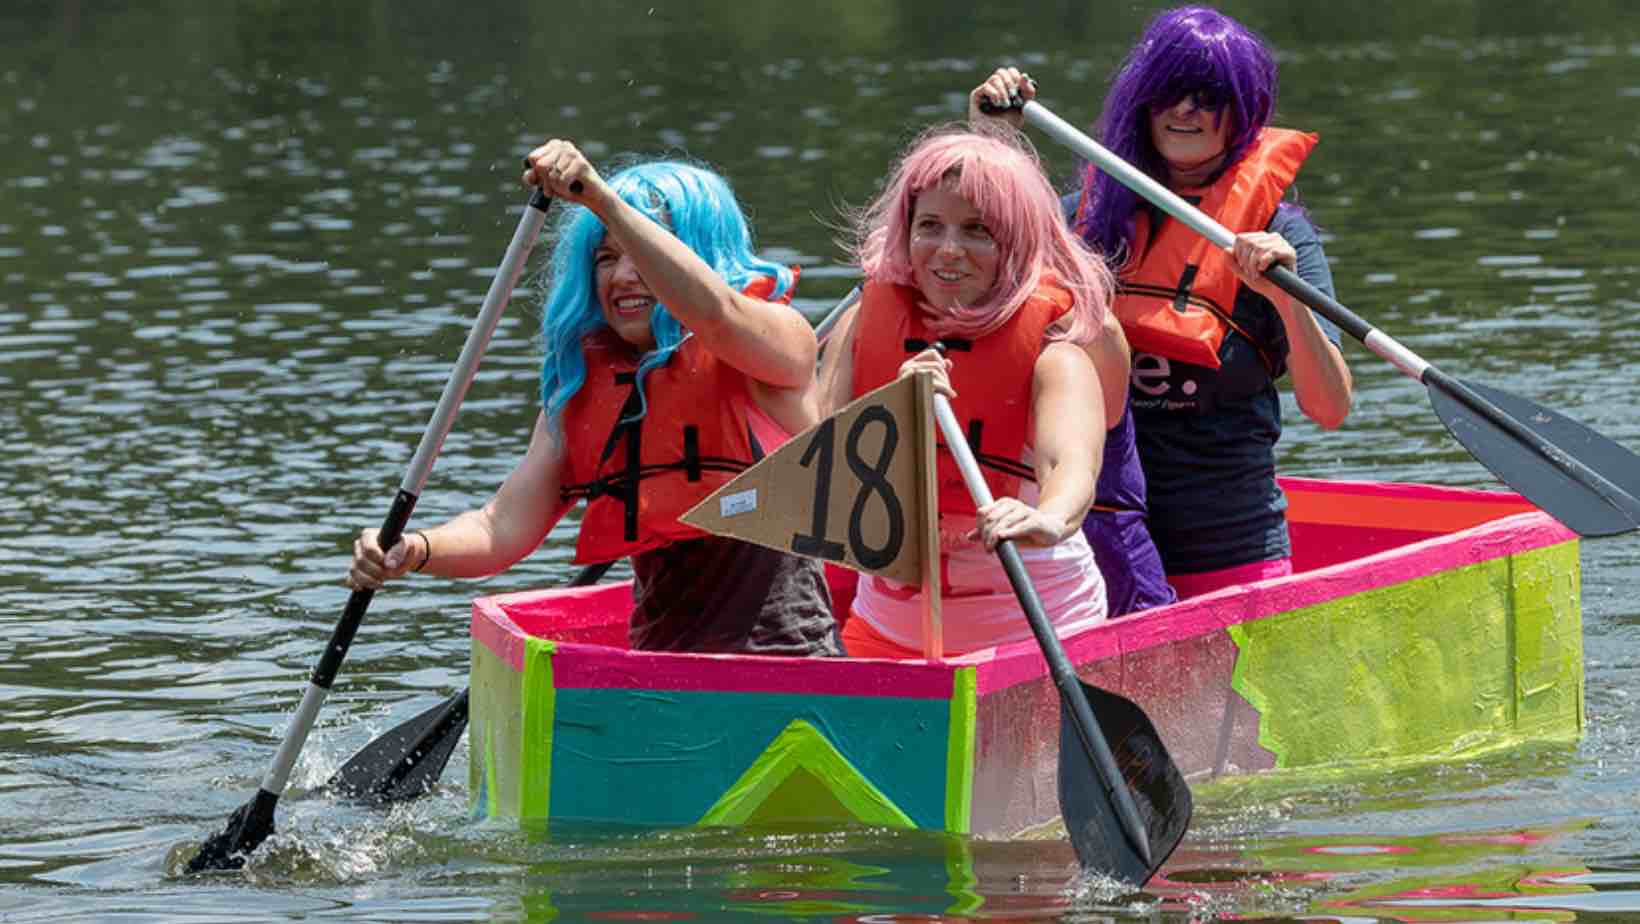 Girls with colorful wigs in a carboard boat